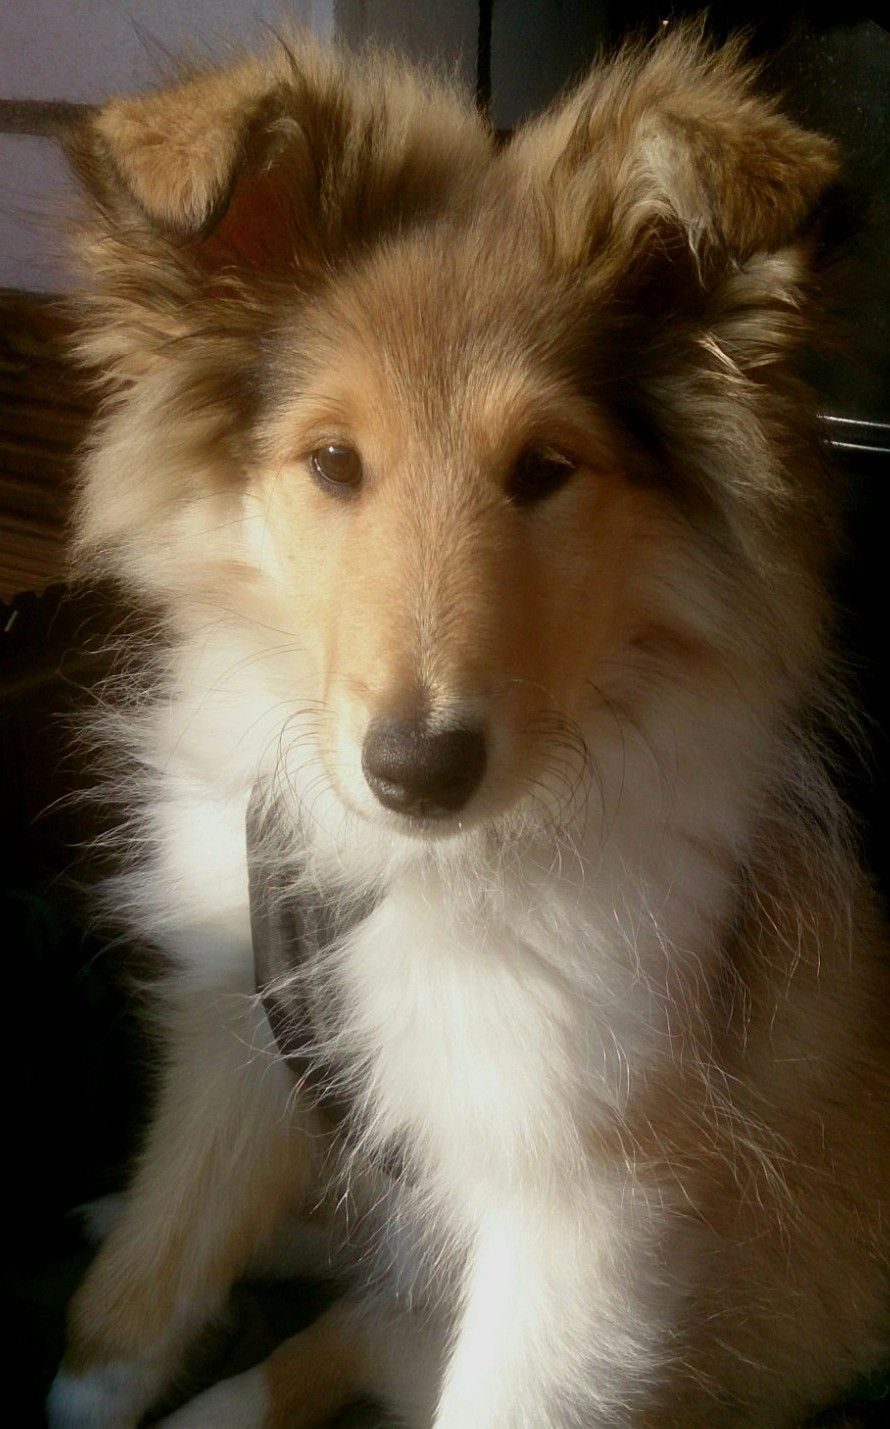 Pin on Rough Collie and Sheltie Puppies